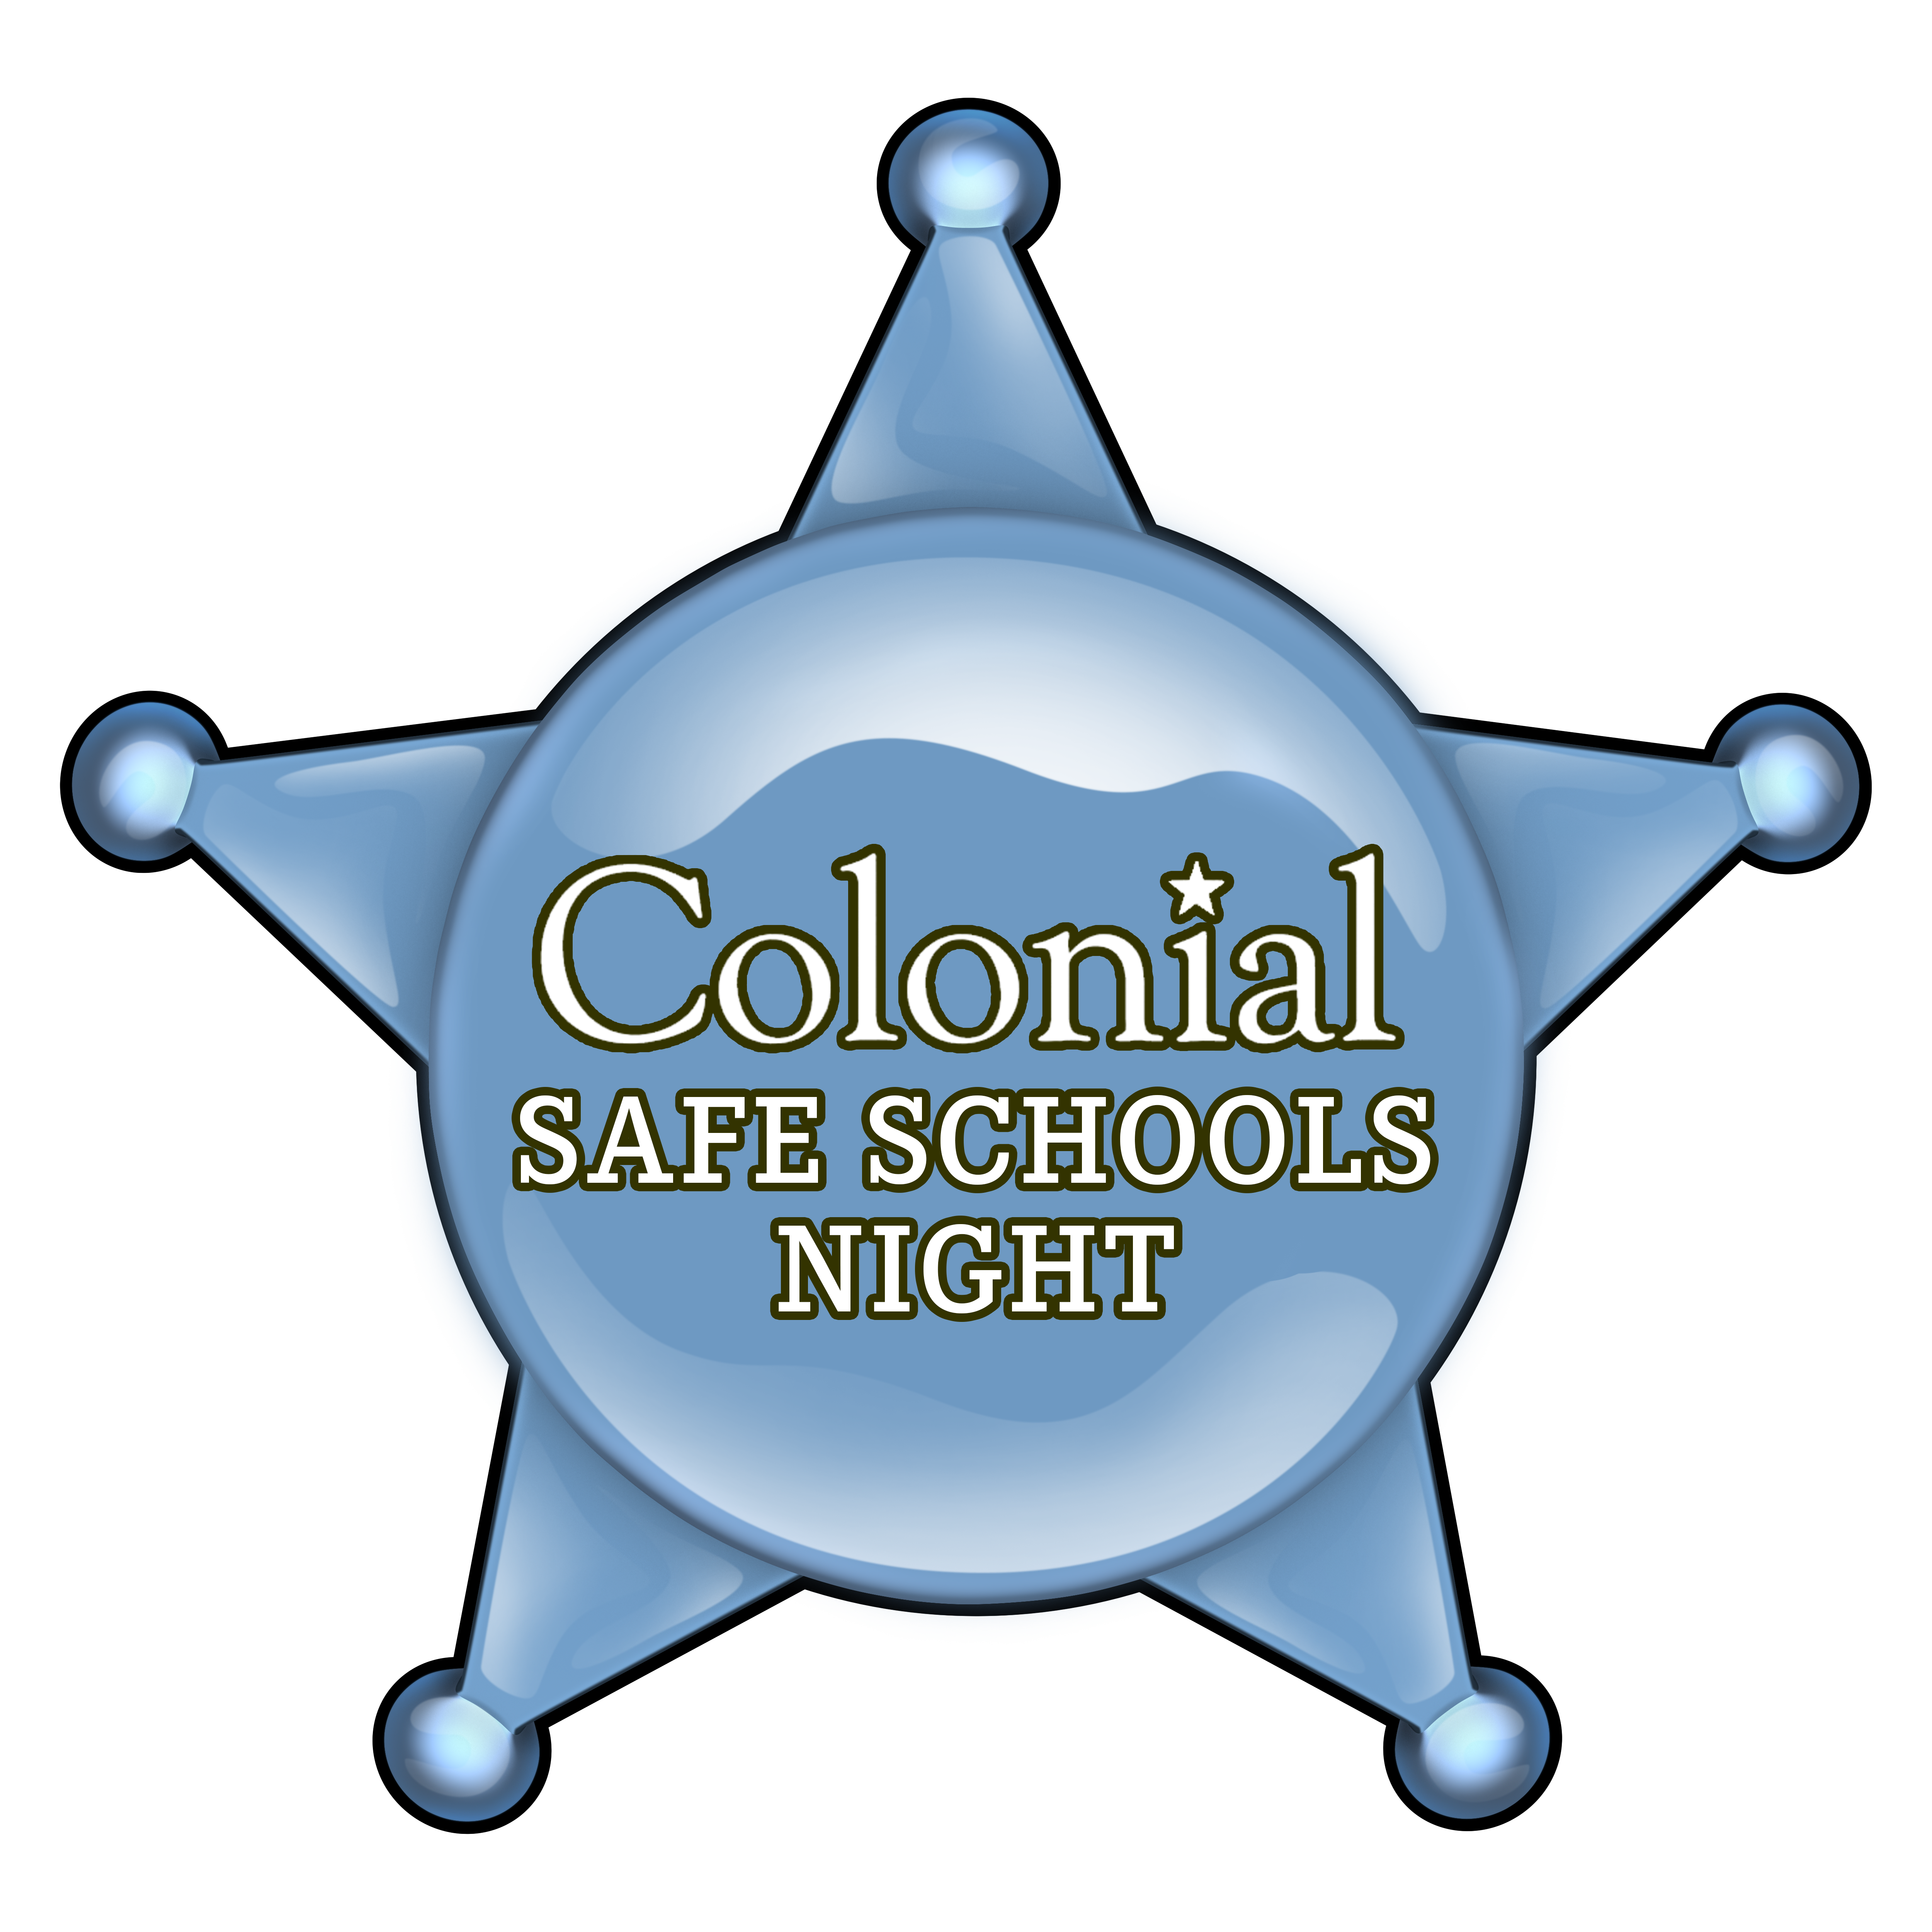 Colonial Safe Schools Night logo